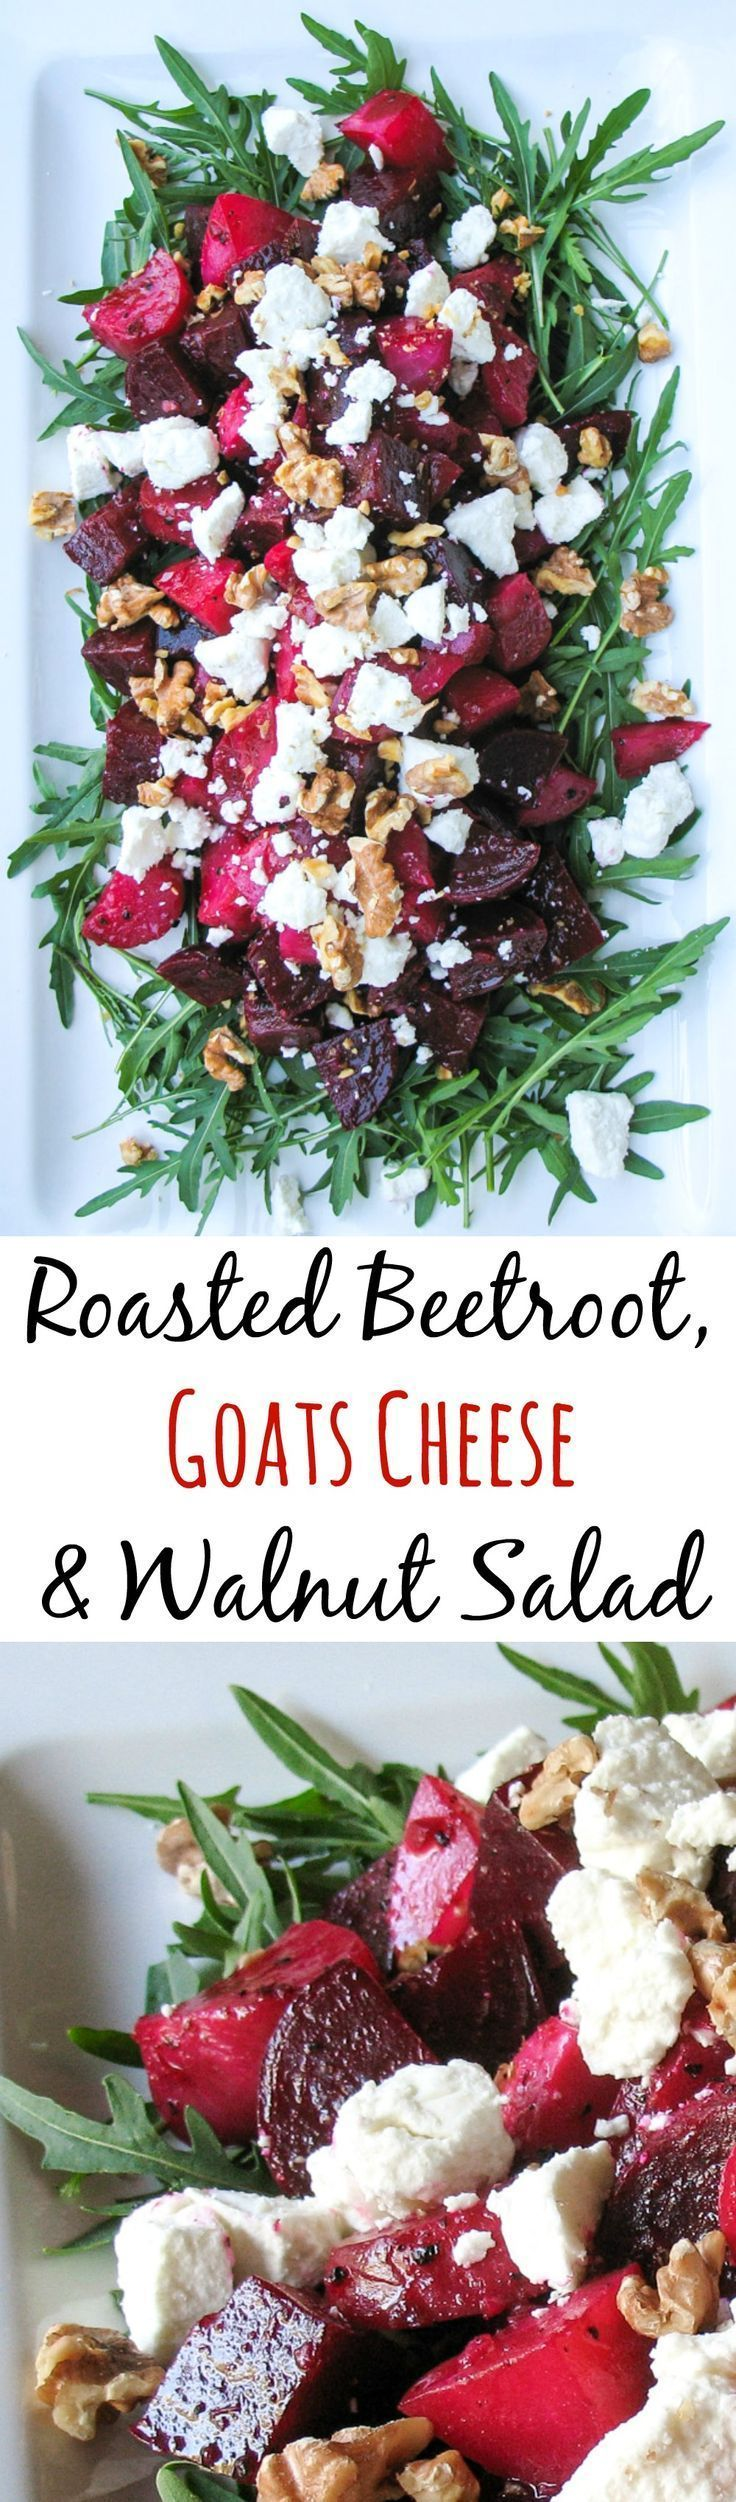 Roasted Beetroot, Goats Cheese & Walnut Salad.  A Great main course salad Recipe.